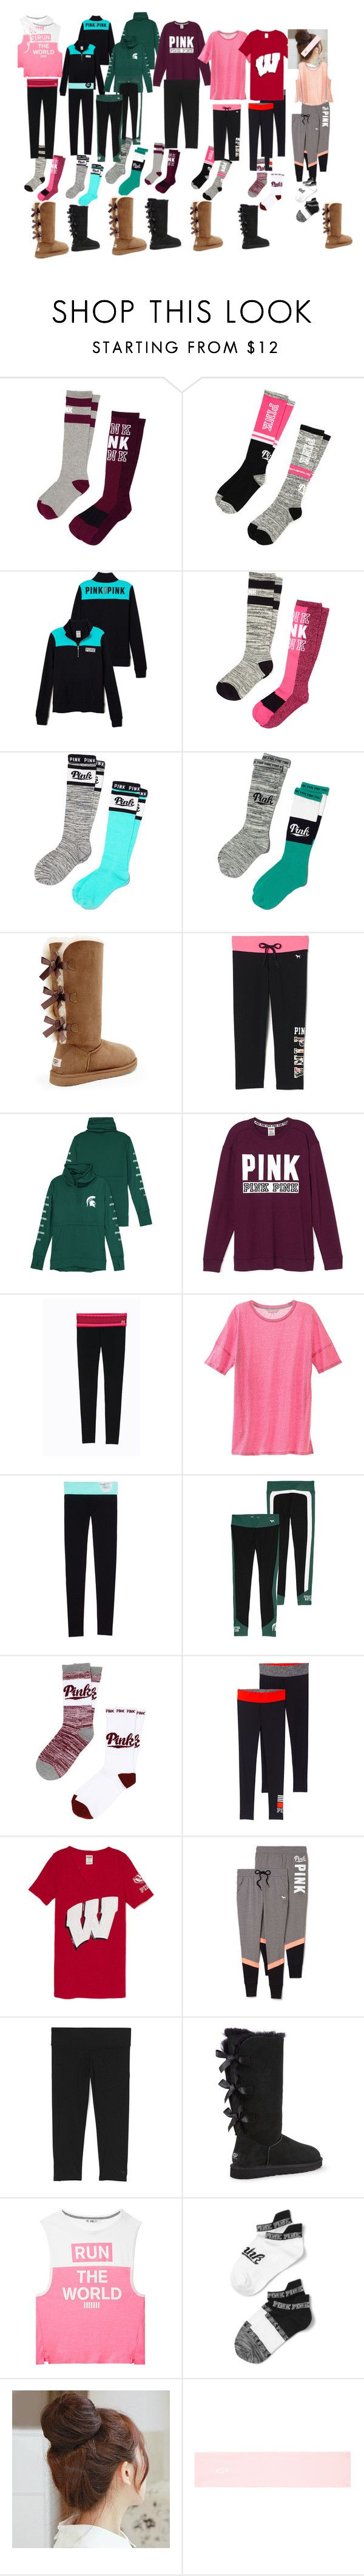 """All Pink/Victoria's Secret clothing outfits for school"" by gingger8 on Polyvore featuring Victoria's Secret PINK, Victoria's Secret, UGG Australia, Pin Show, school, Pink, Victoria and comfy"